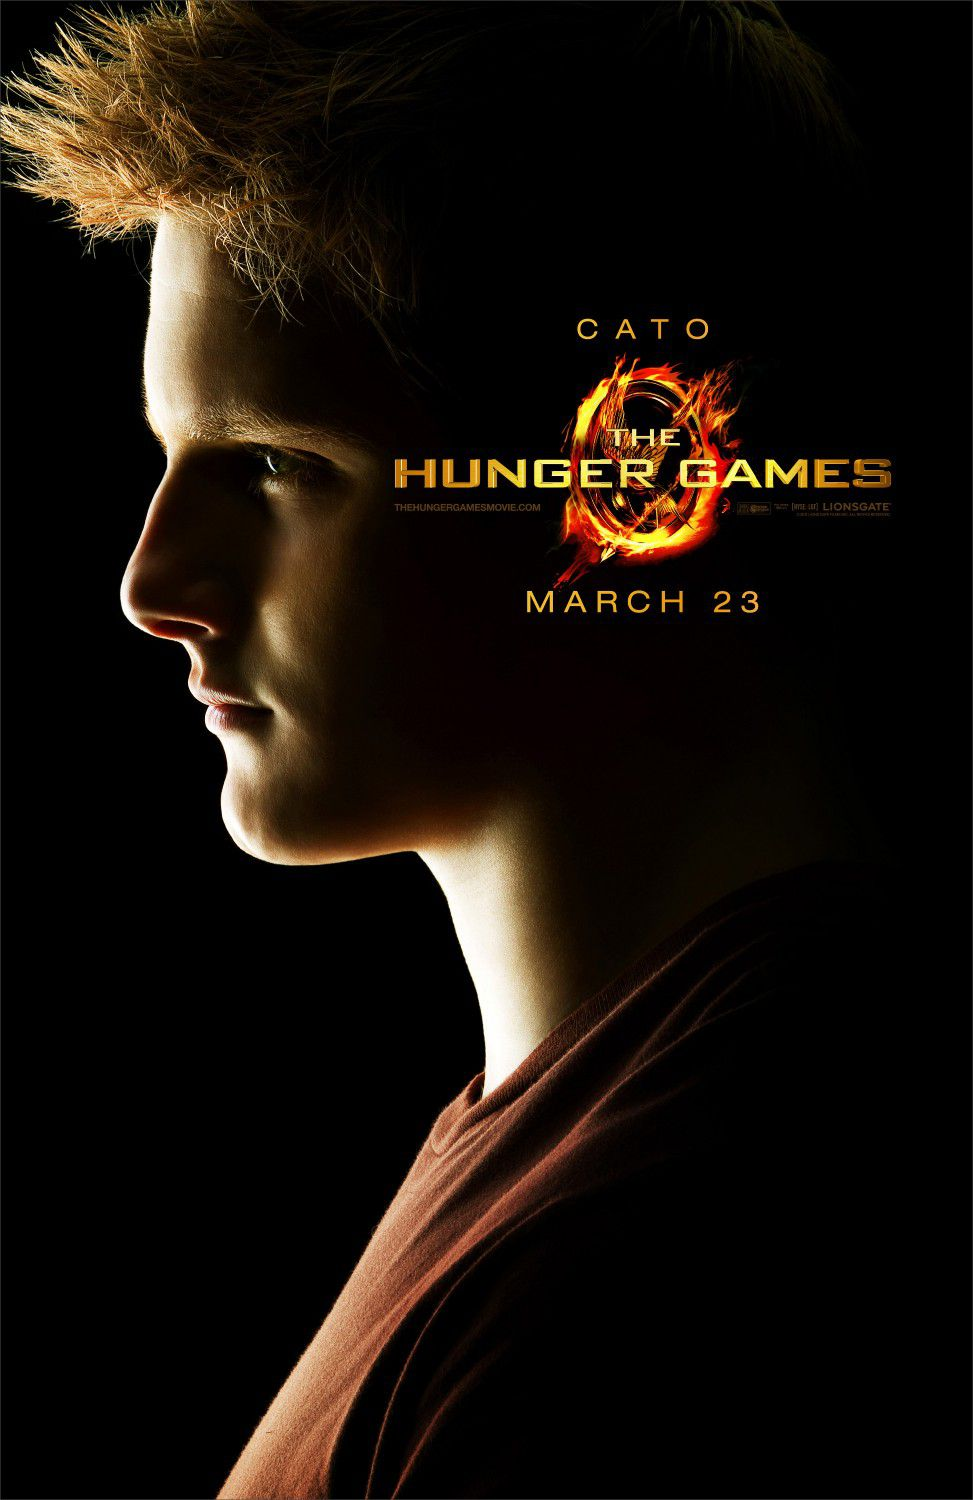 Hunger Games - Cato